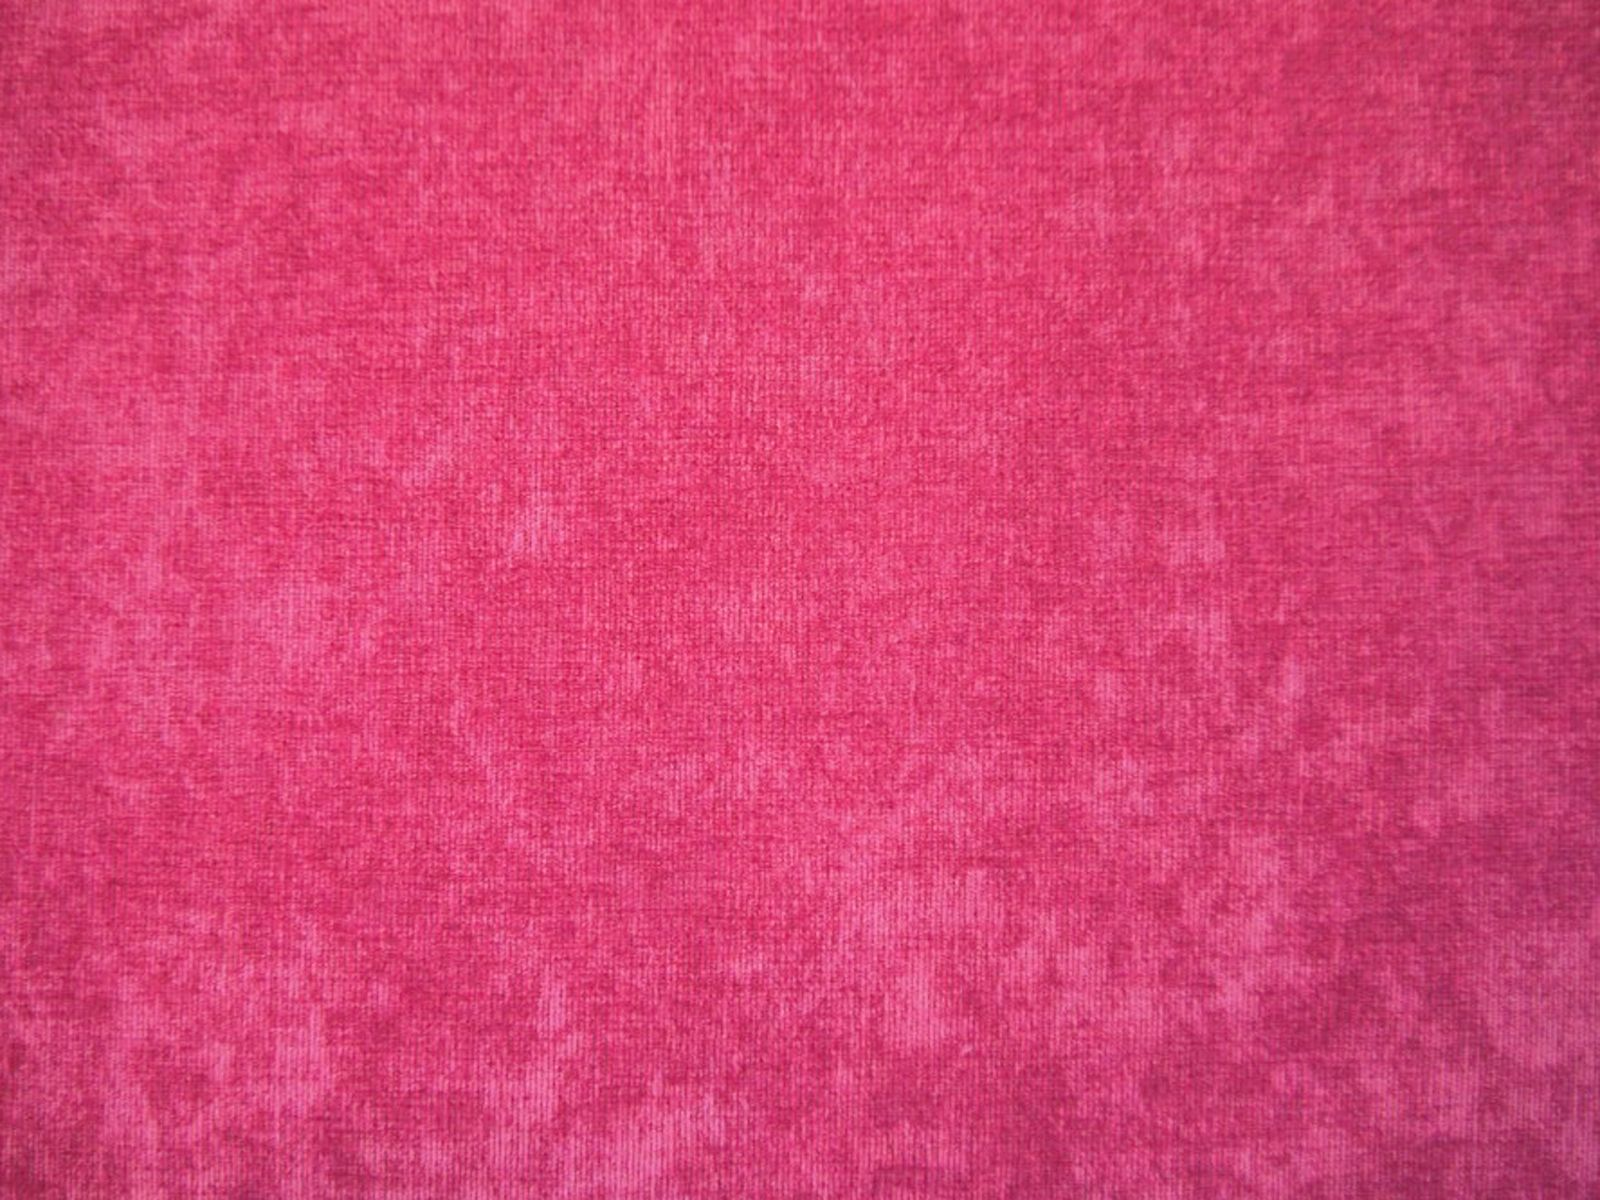 Fuchsia Pink Upholstery Fabric Messina 2074